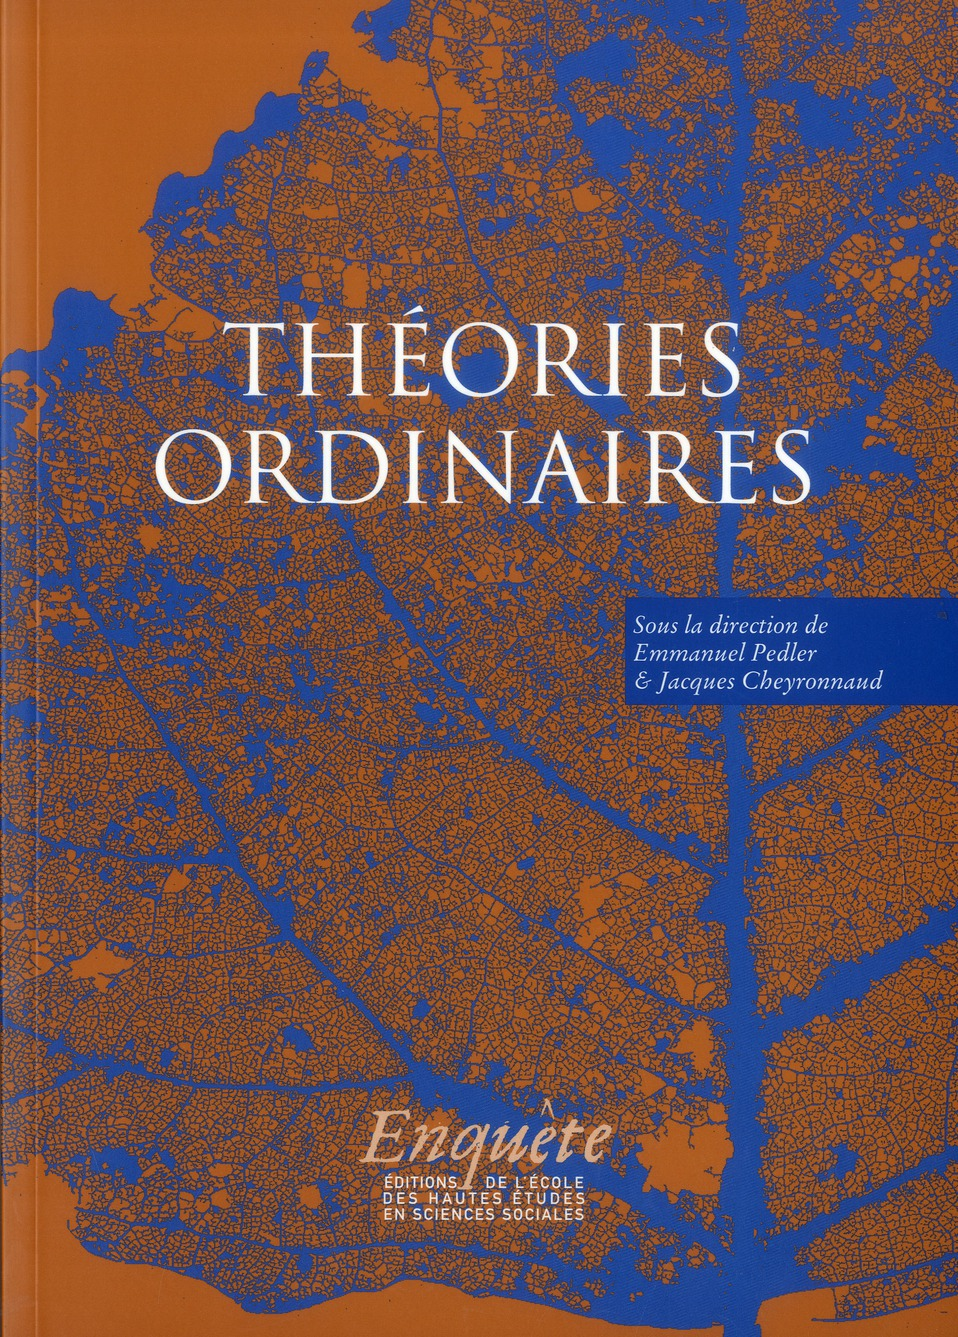 THEORIES ORDINAIRES